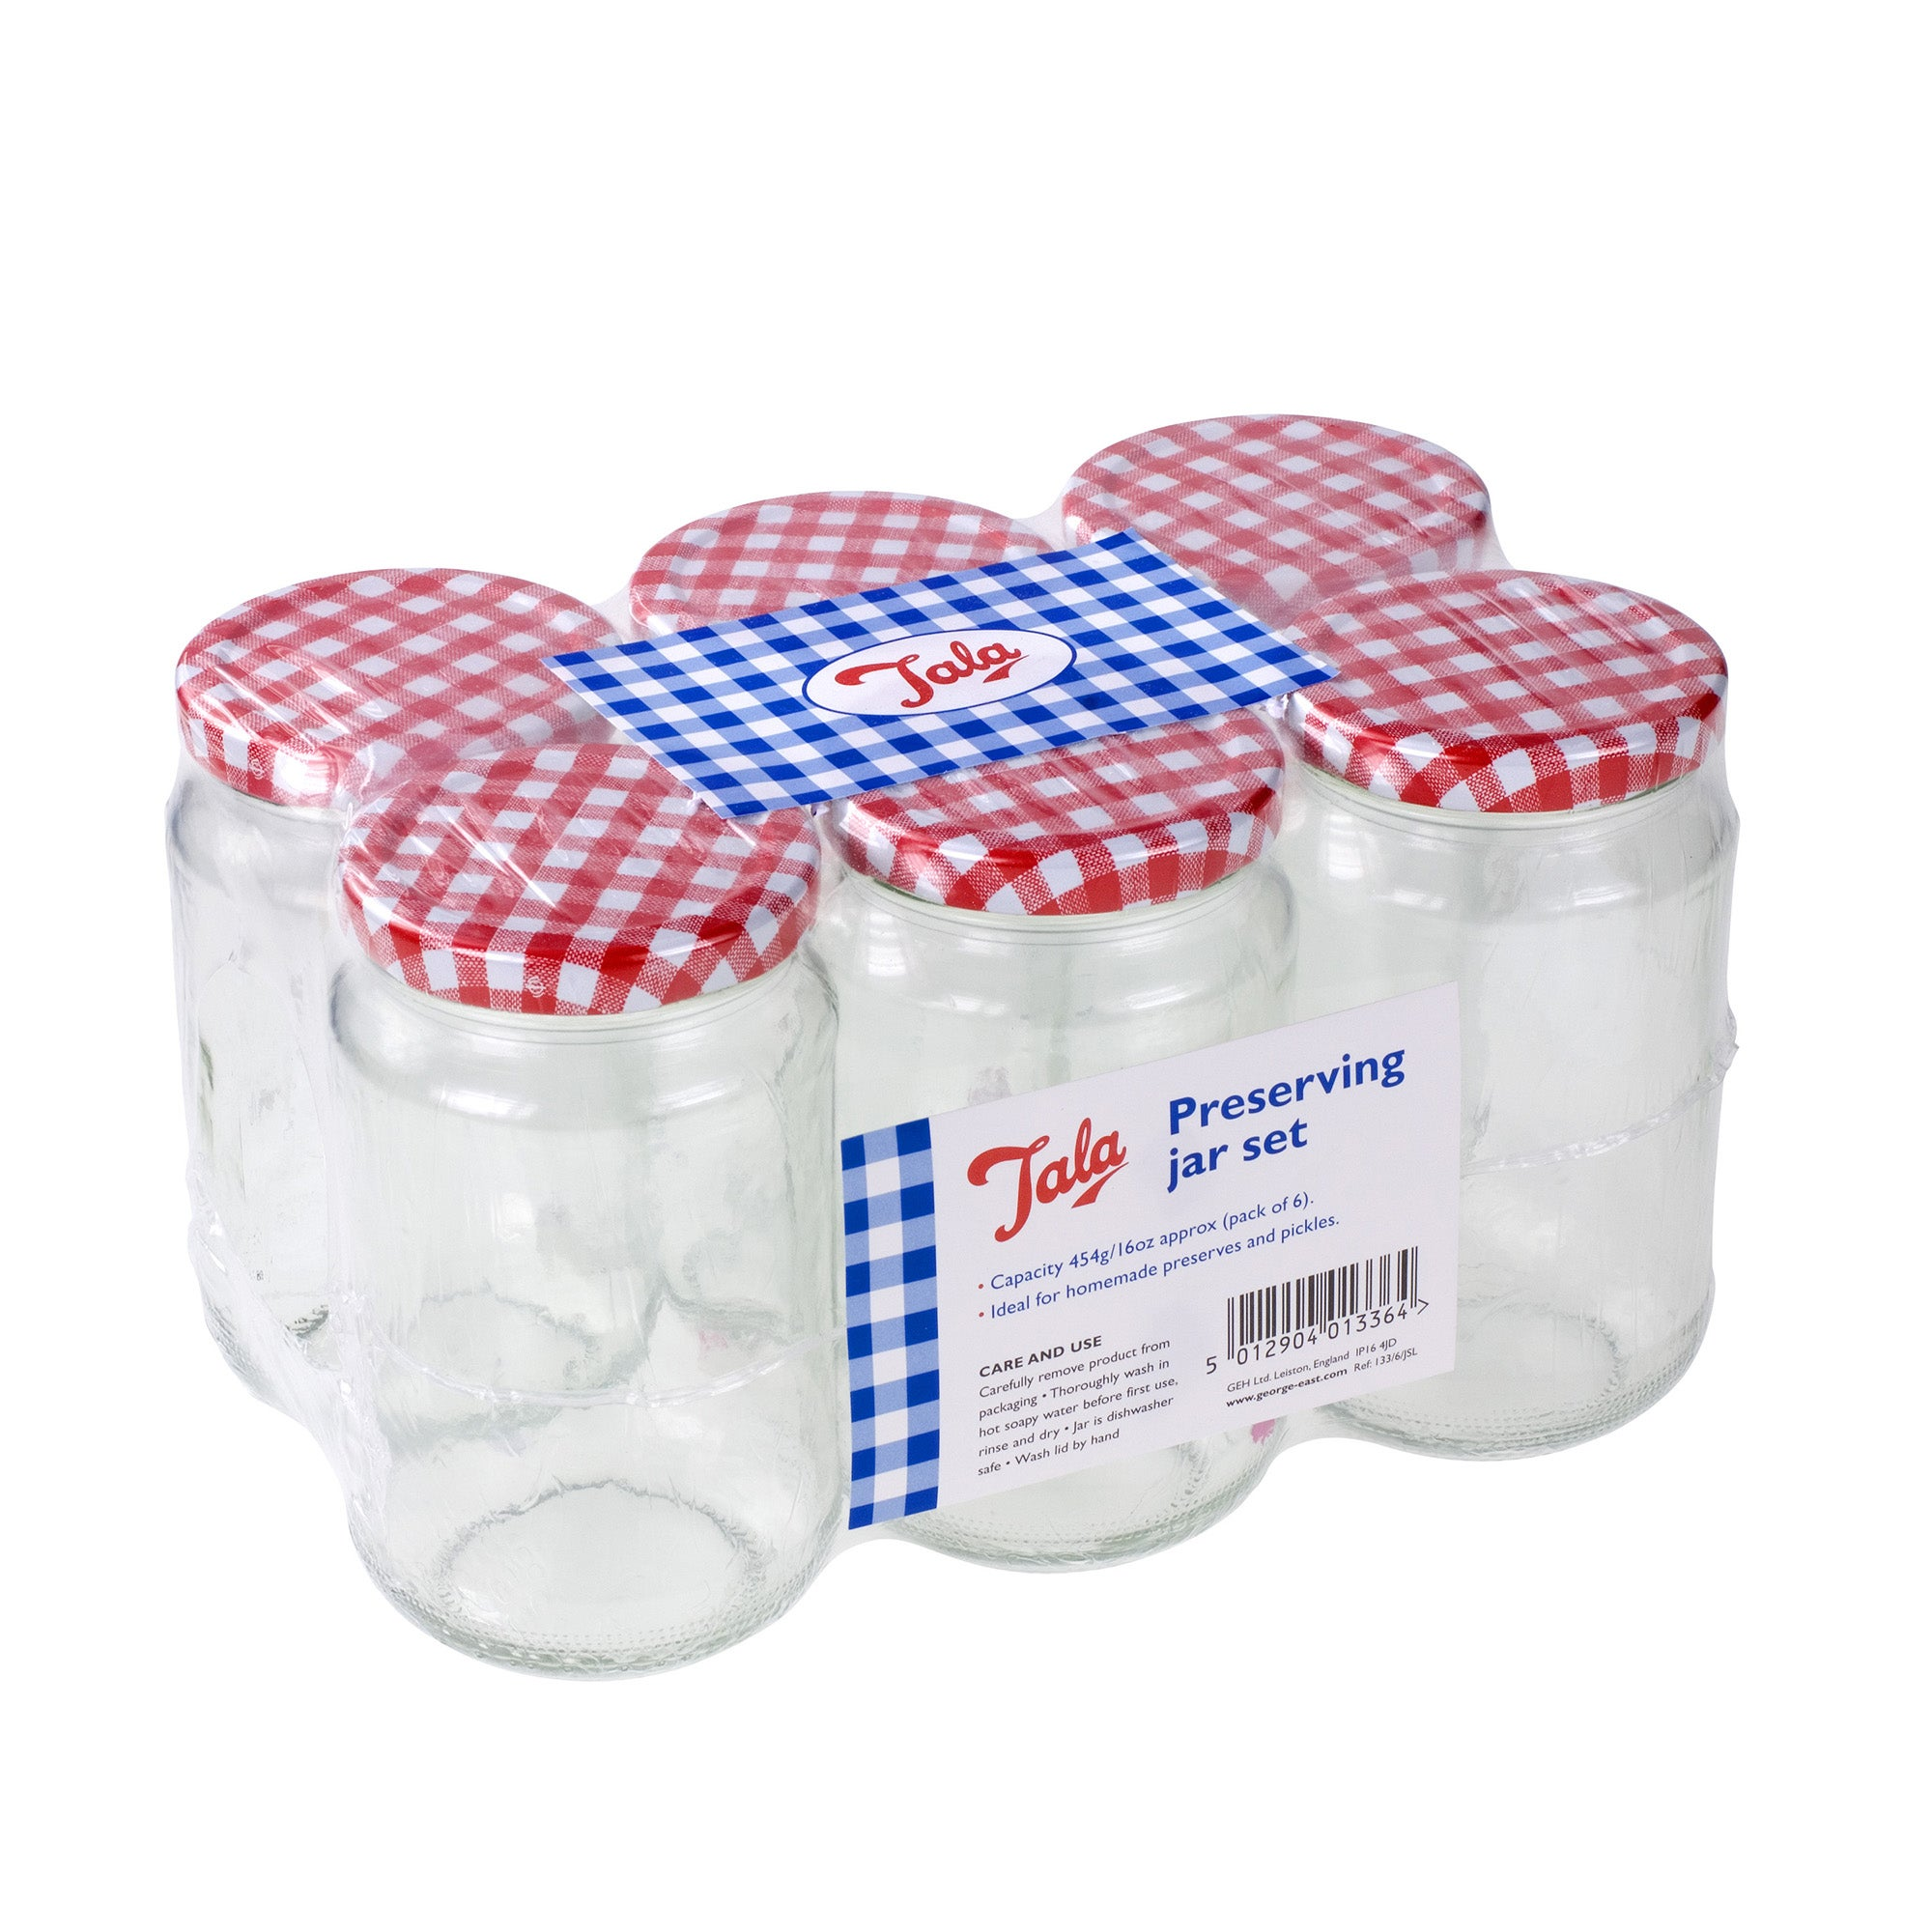 Tala Set of 6 Glass Preserving Jars